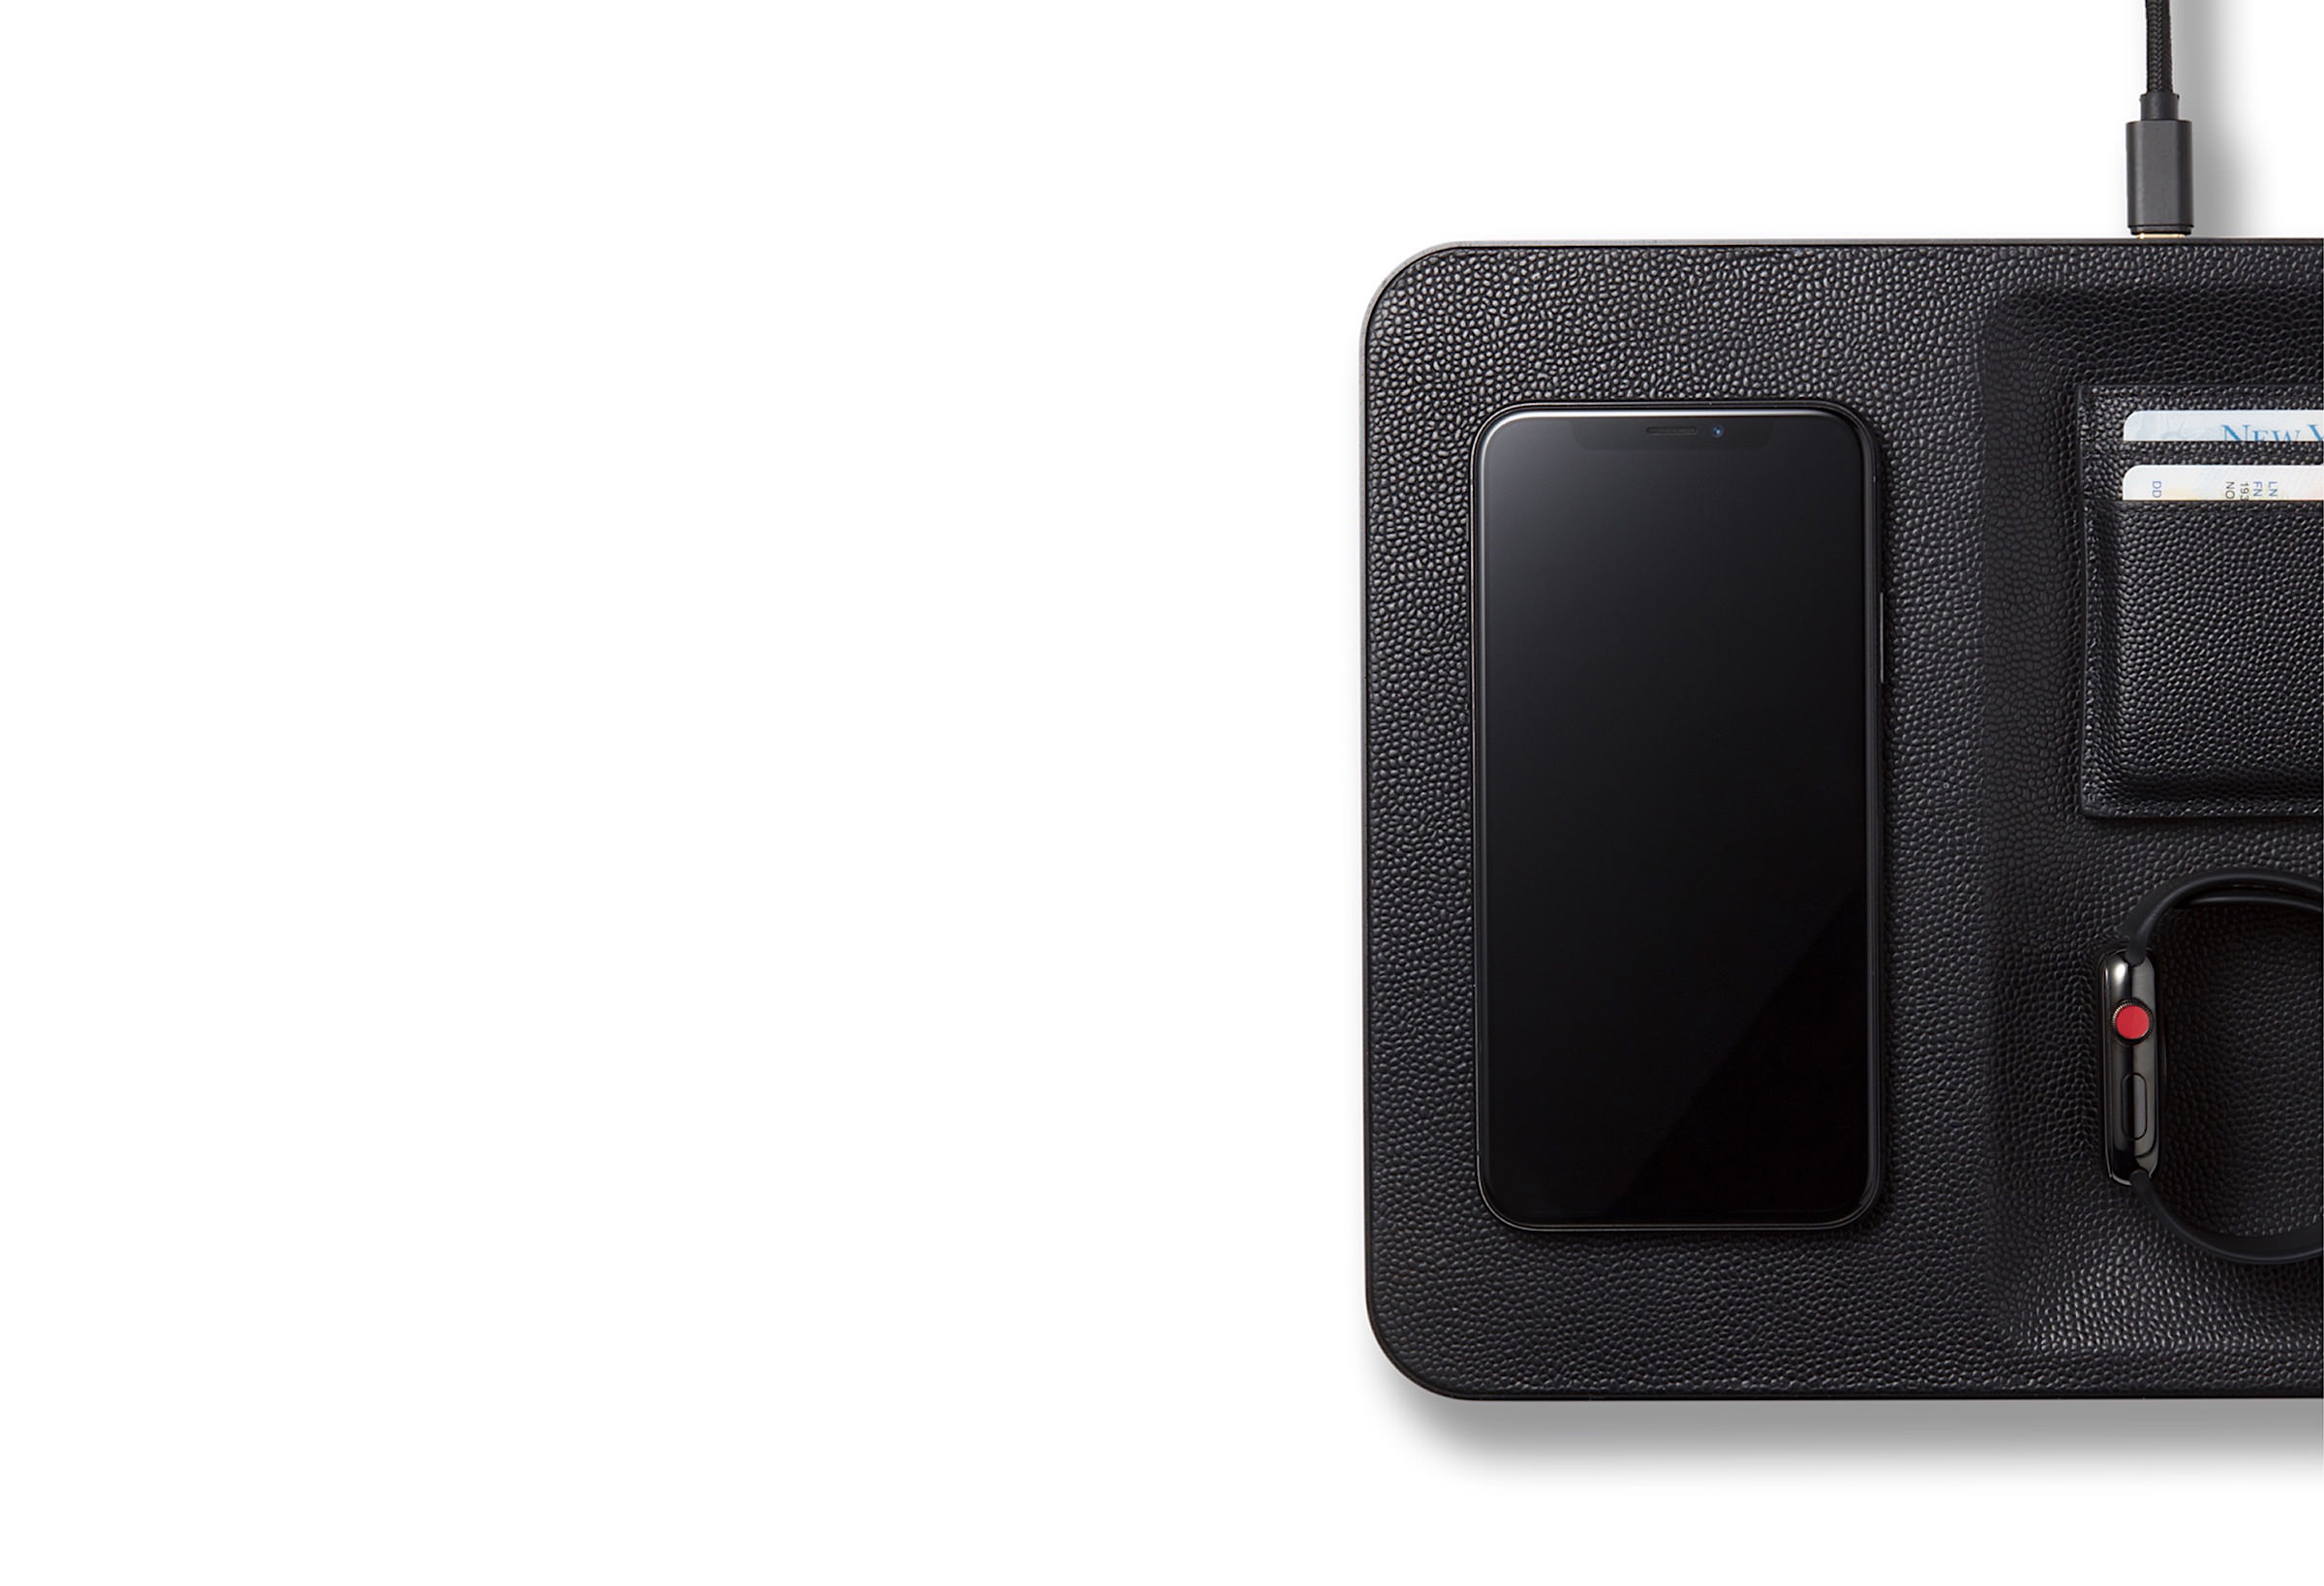 The Courant Catch 3 Wireless Charger